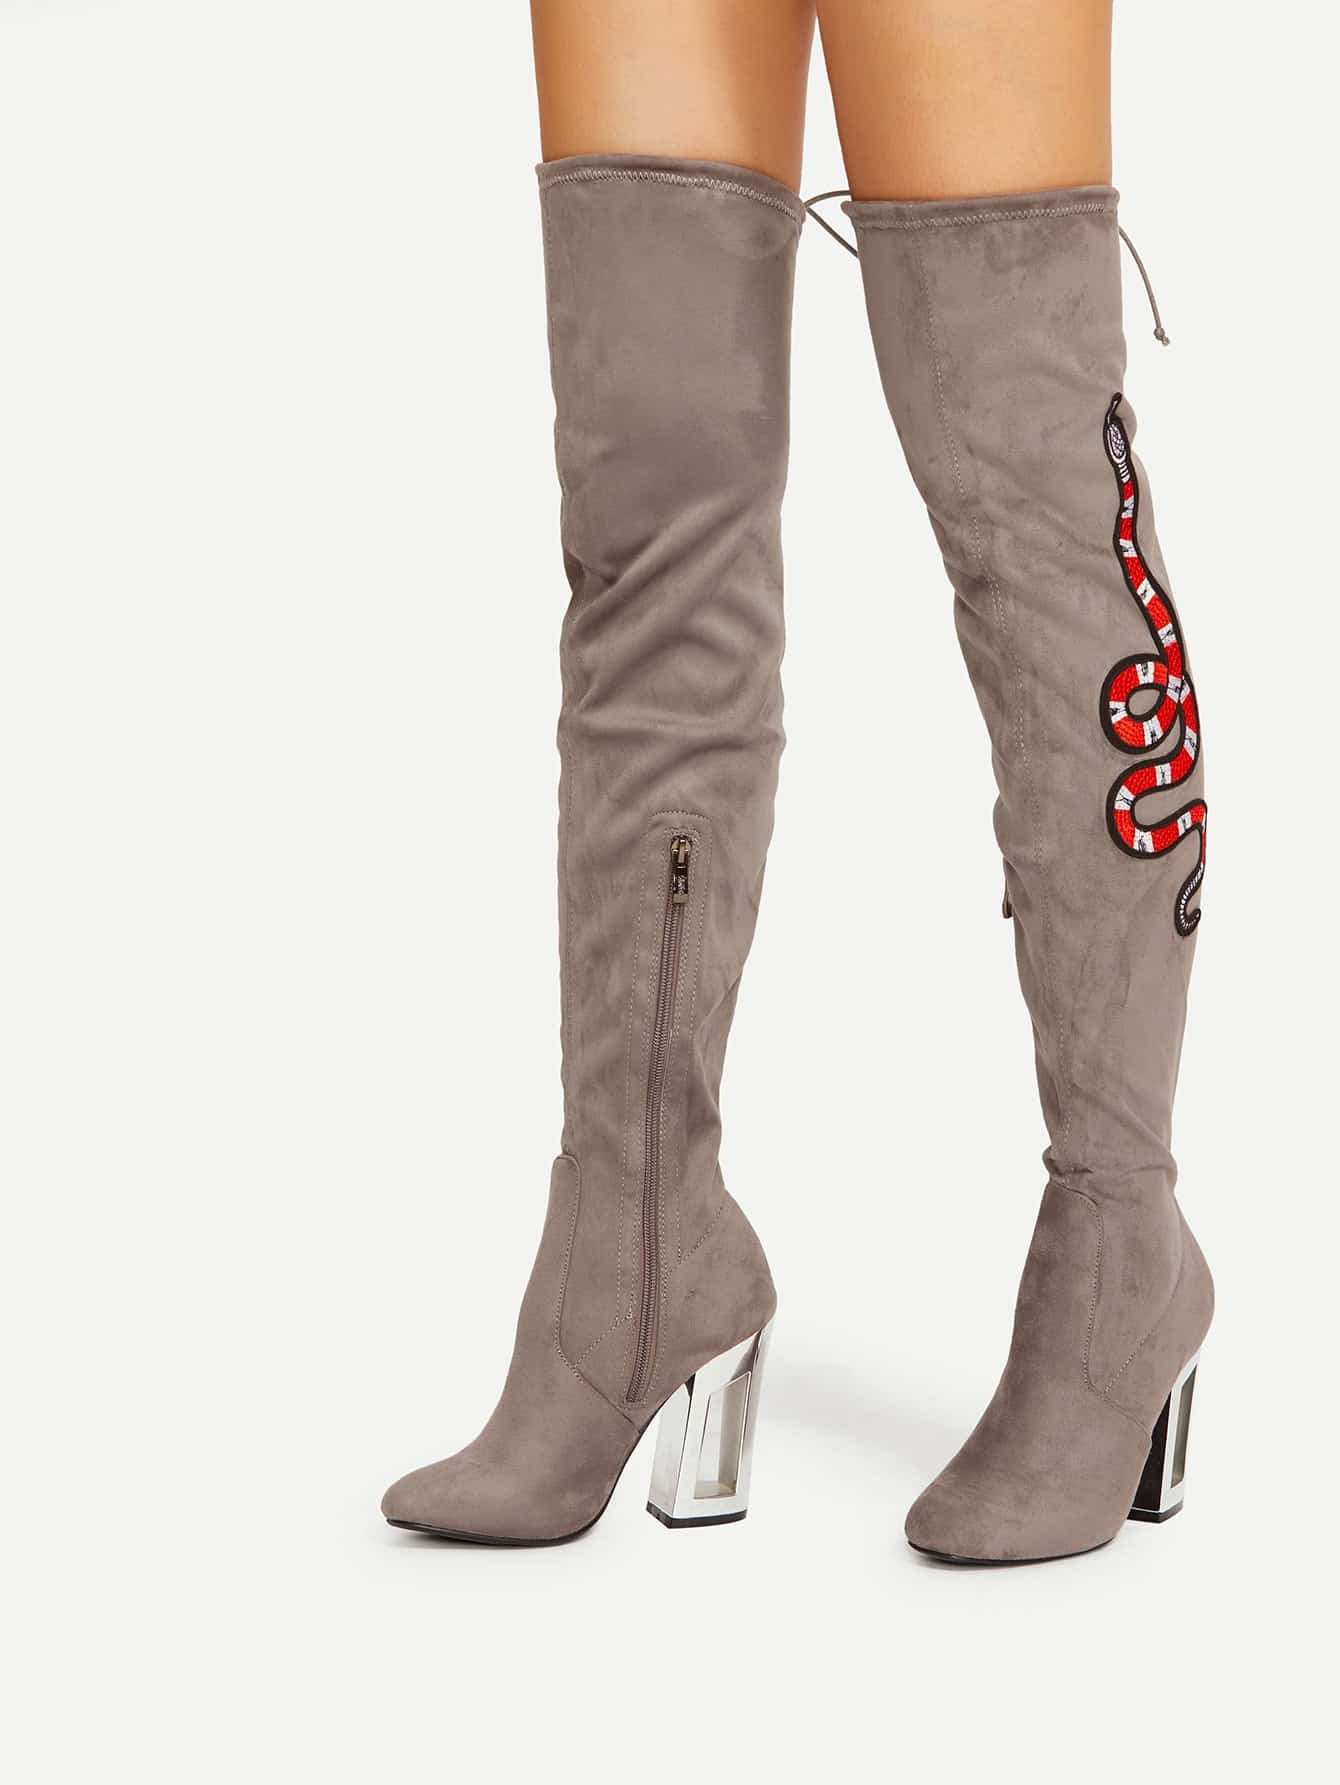 Snake Embroidery Lace Up Back Over Knee Boots shoes17080518